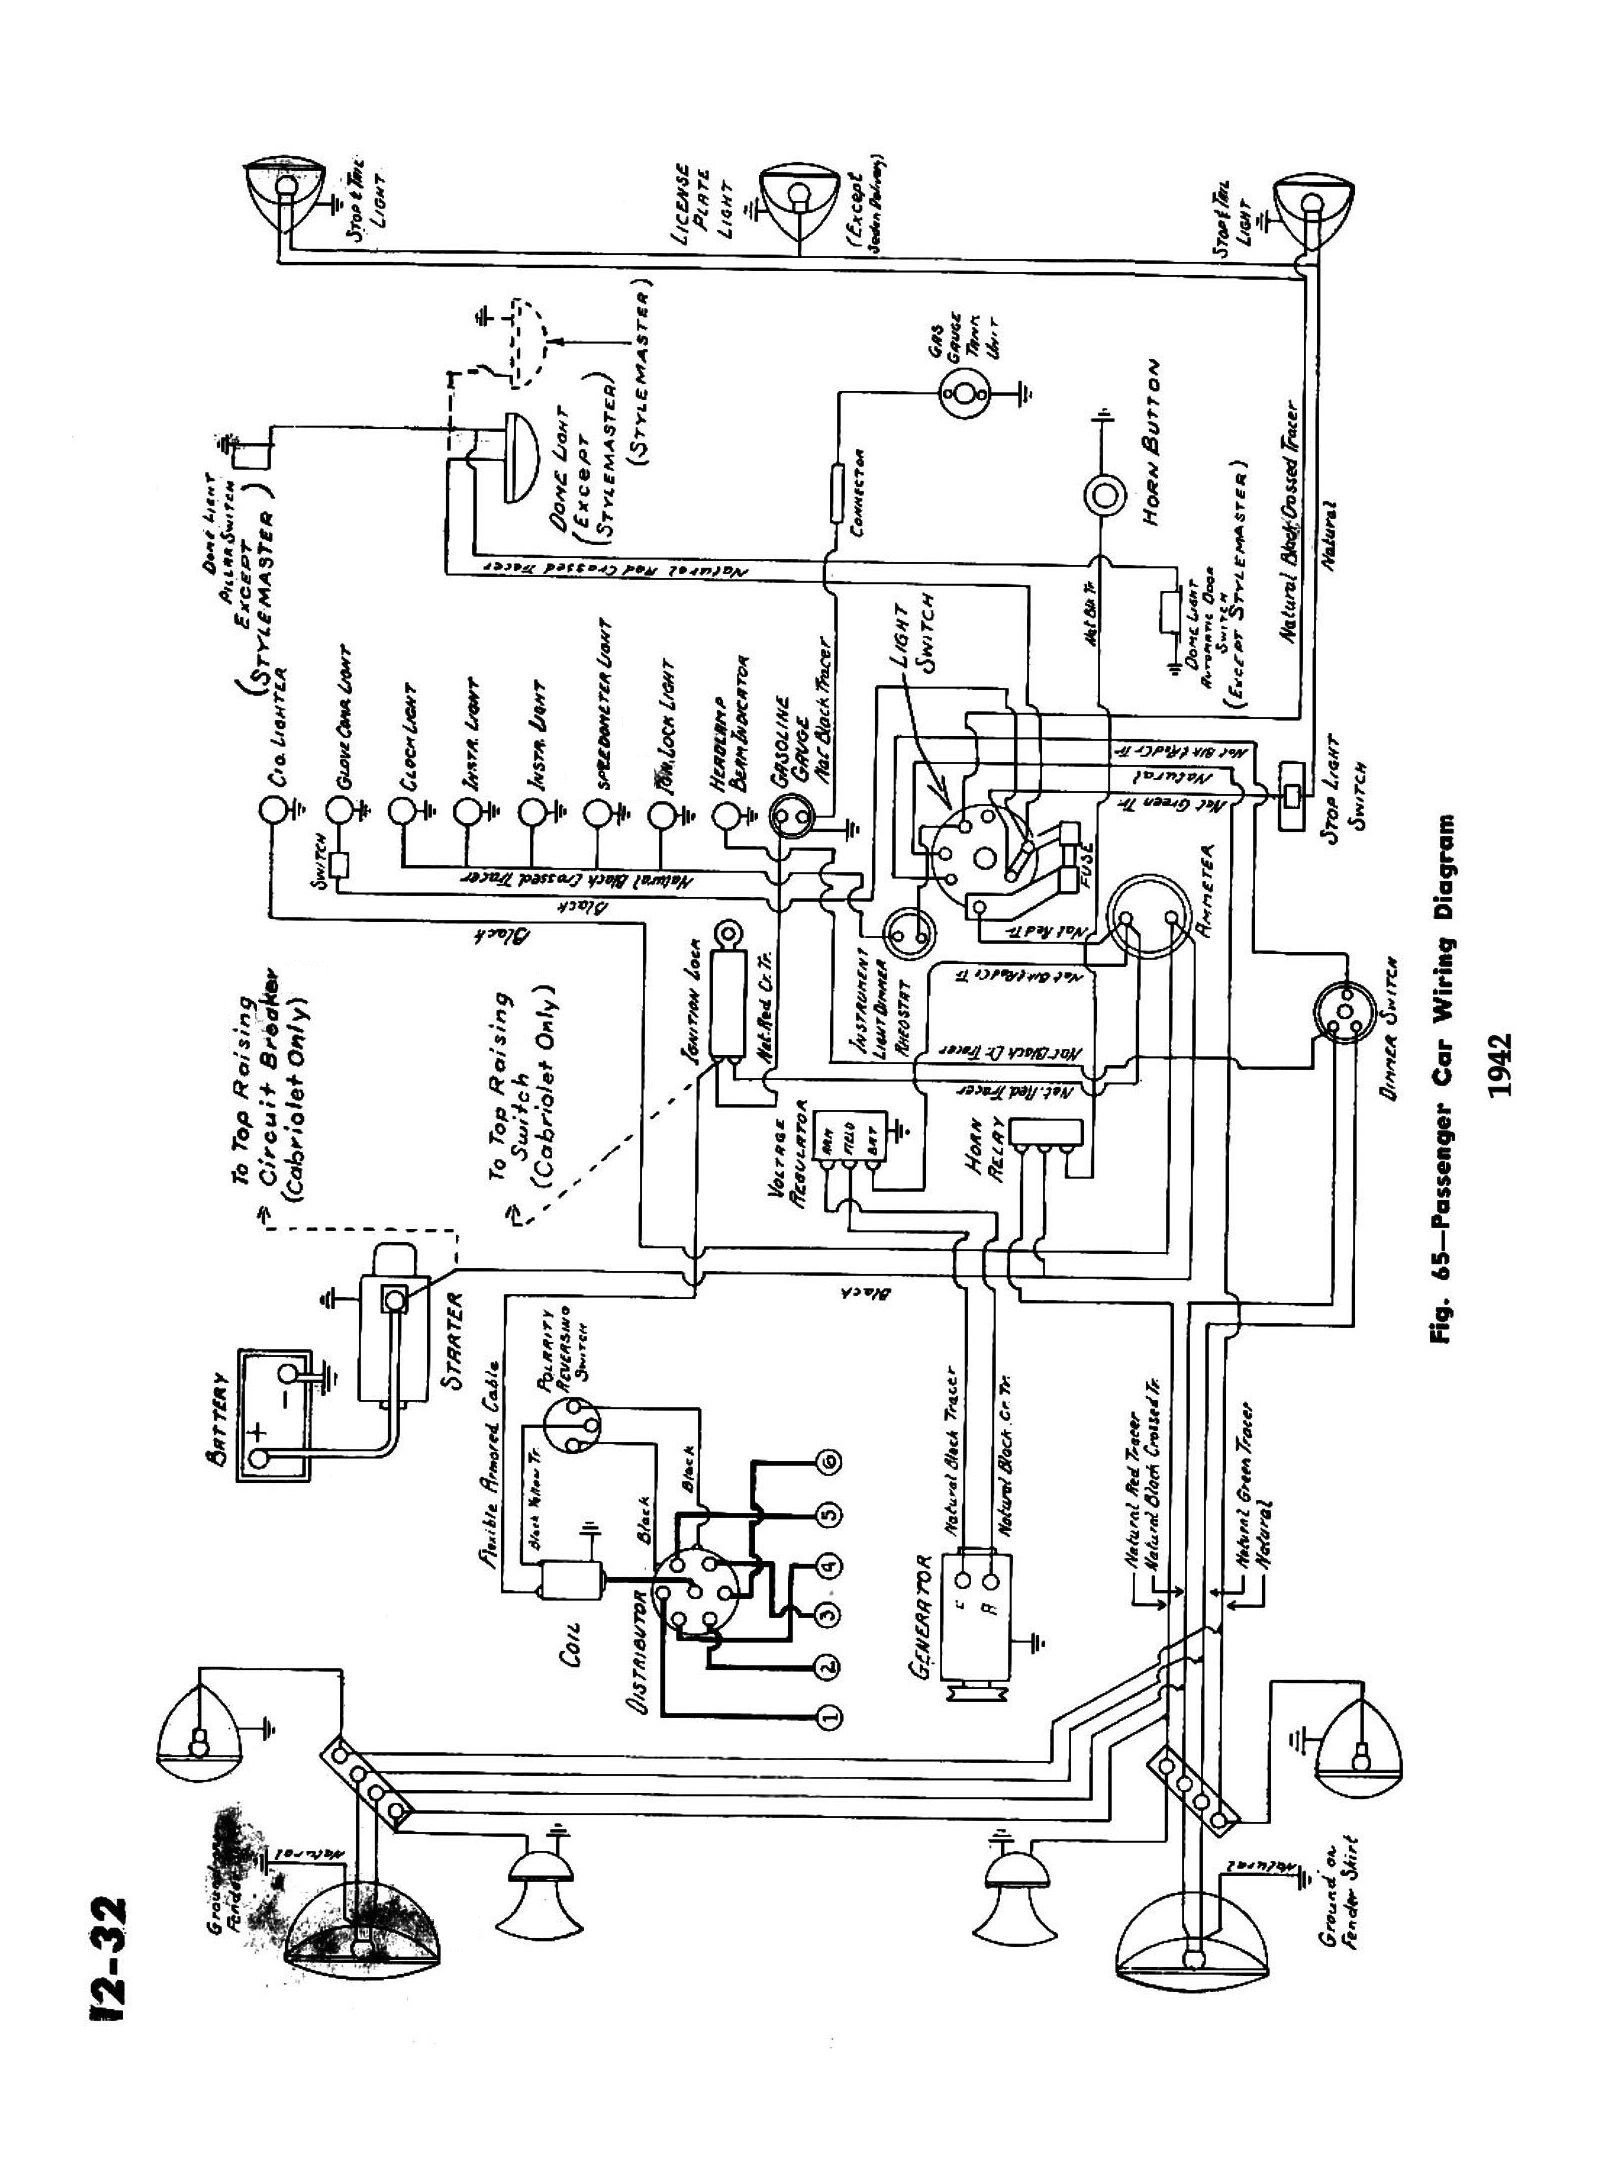 Cat fork lift wiring diagrams wiring diagram excellent cat th63 wiring schematics photos electrical circuit wiring diagram asfbconference2016 Image collections